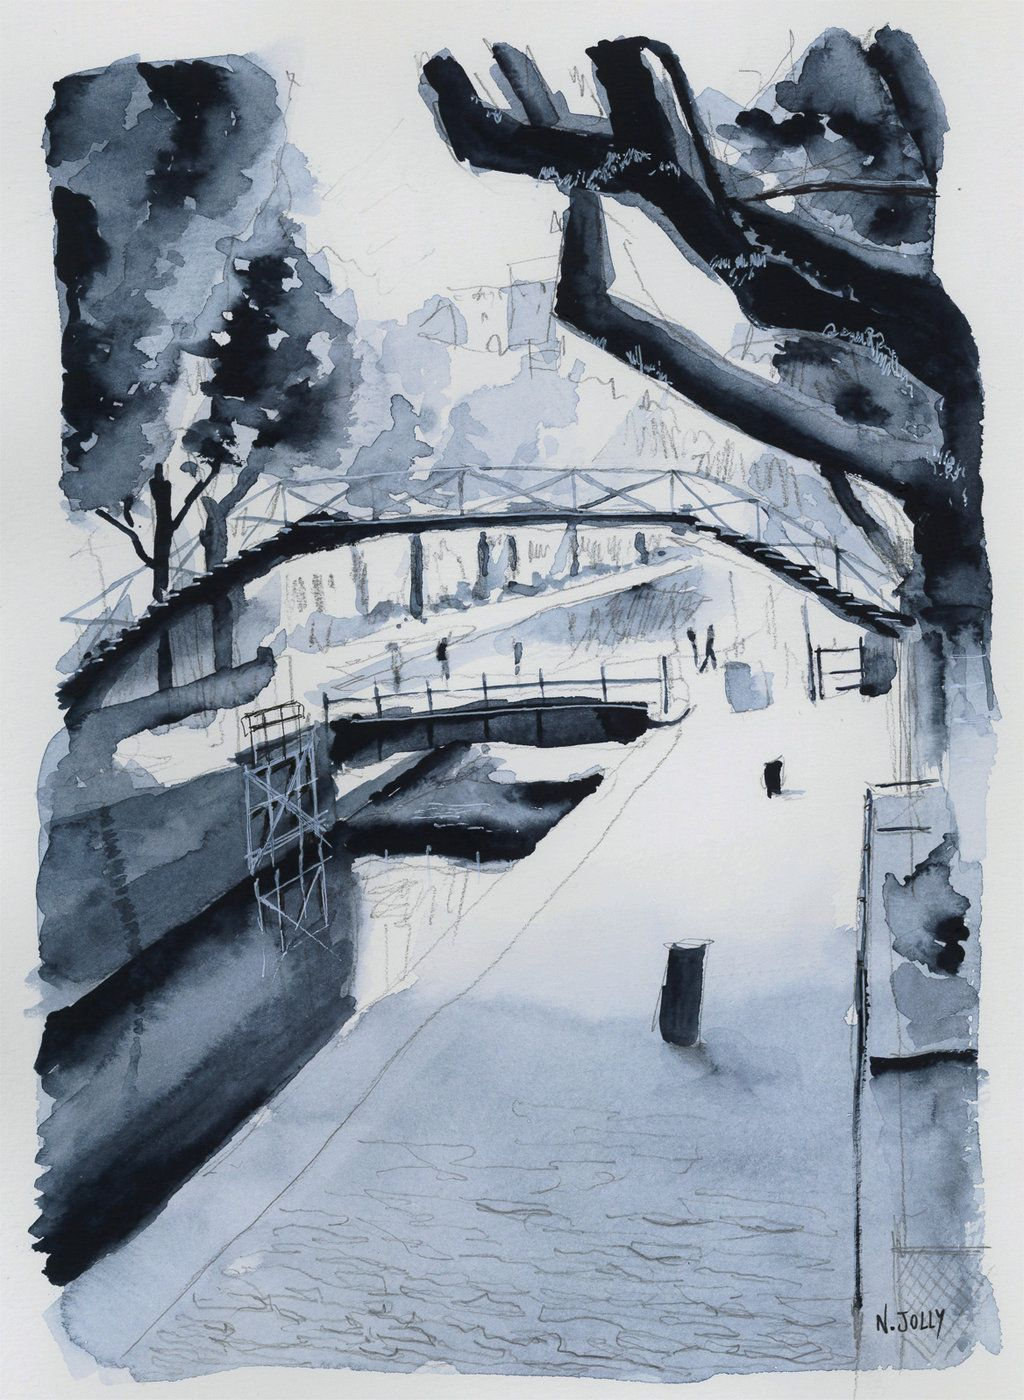 For Sale Original Canal Saint Martin Paris By Nicolasjolly